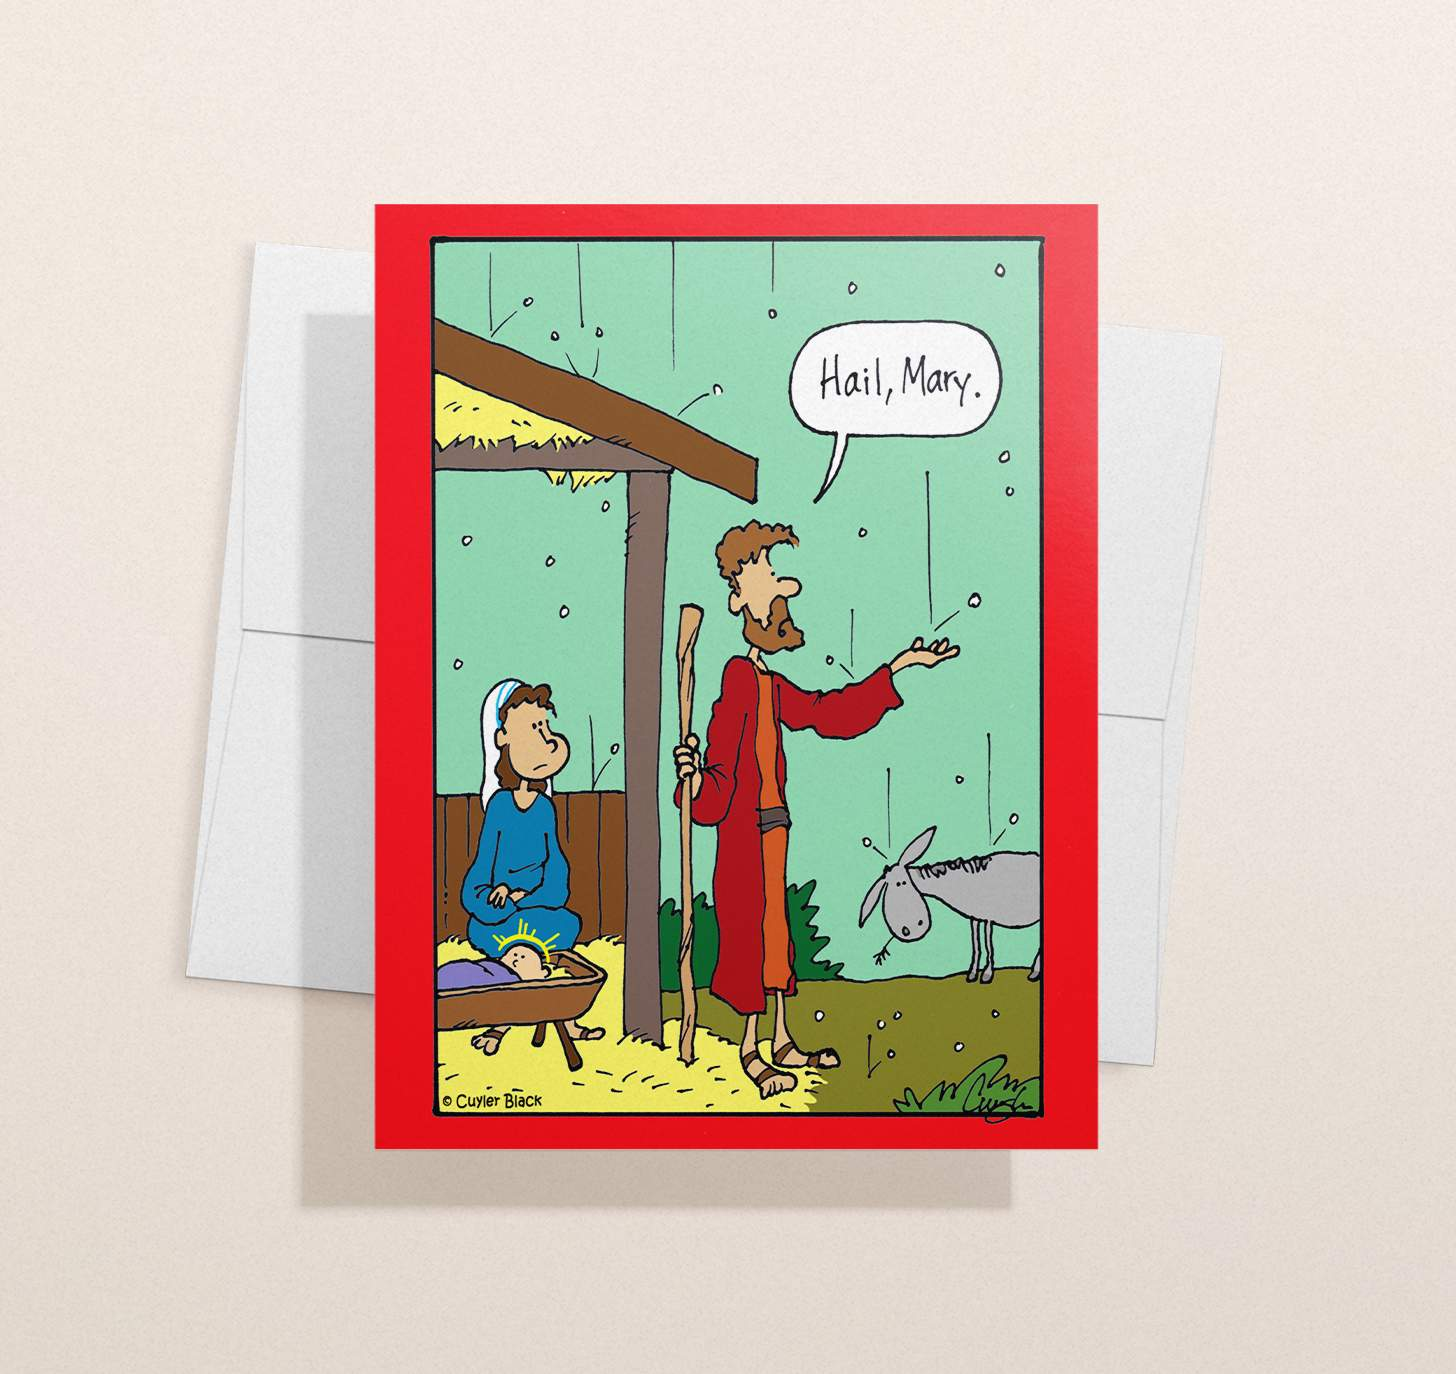 Funny religious design with hail storm with envelope